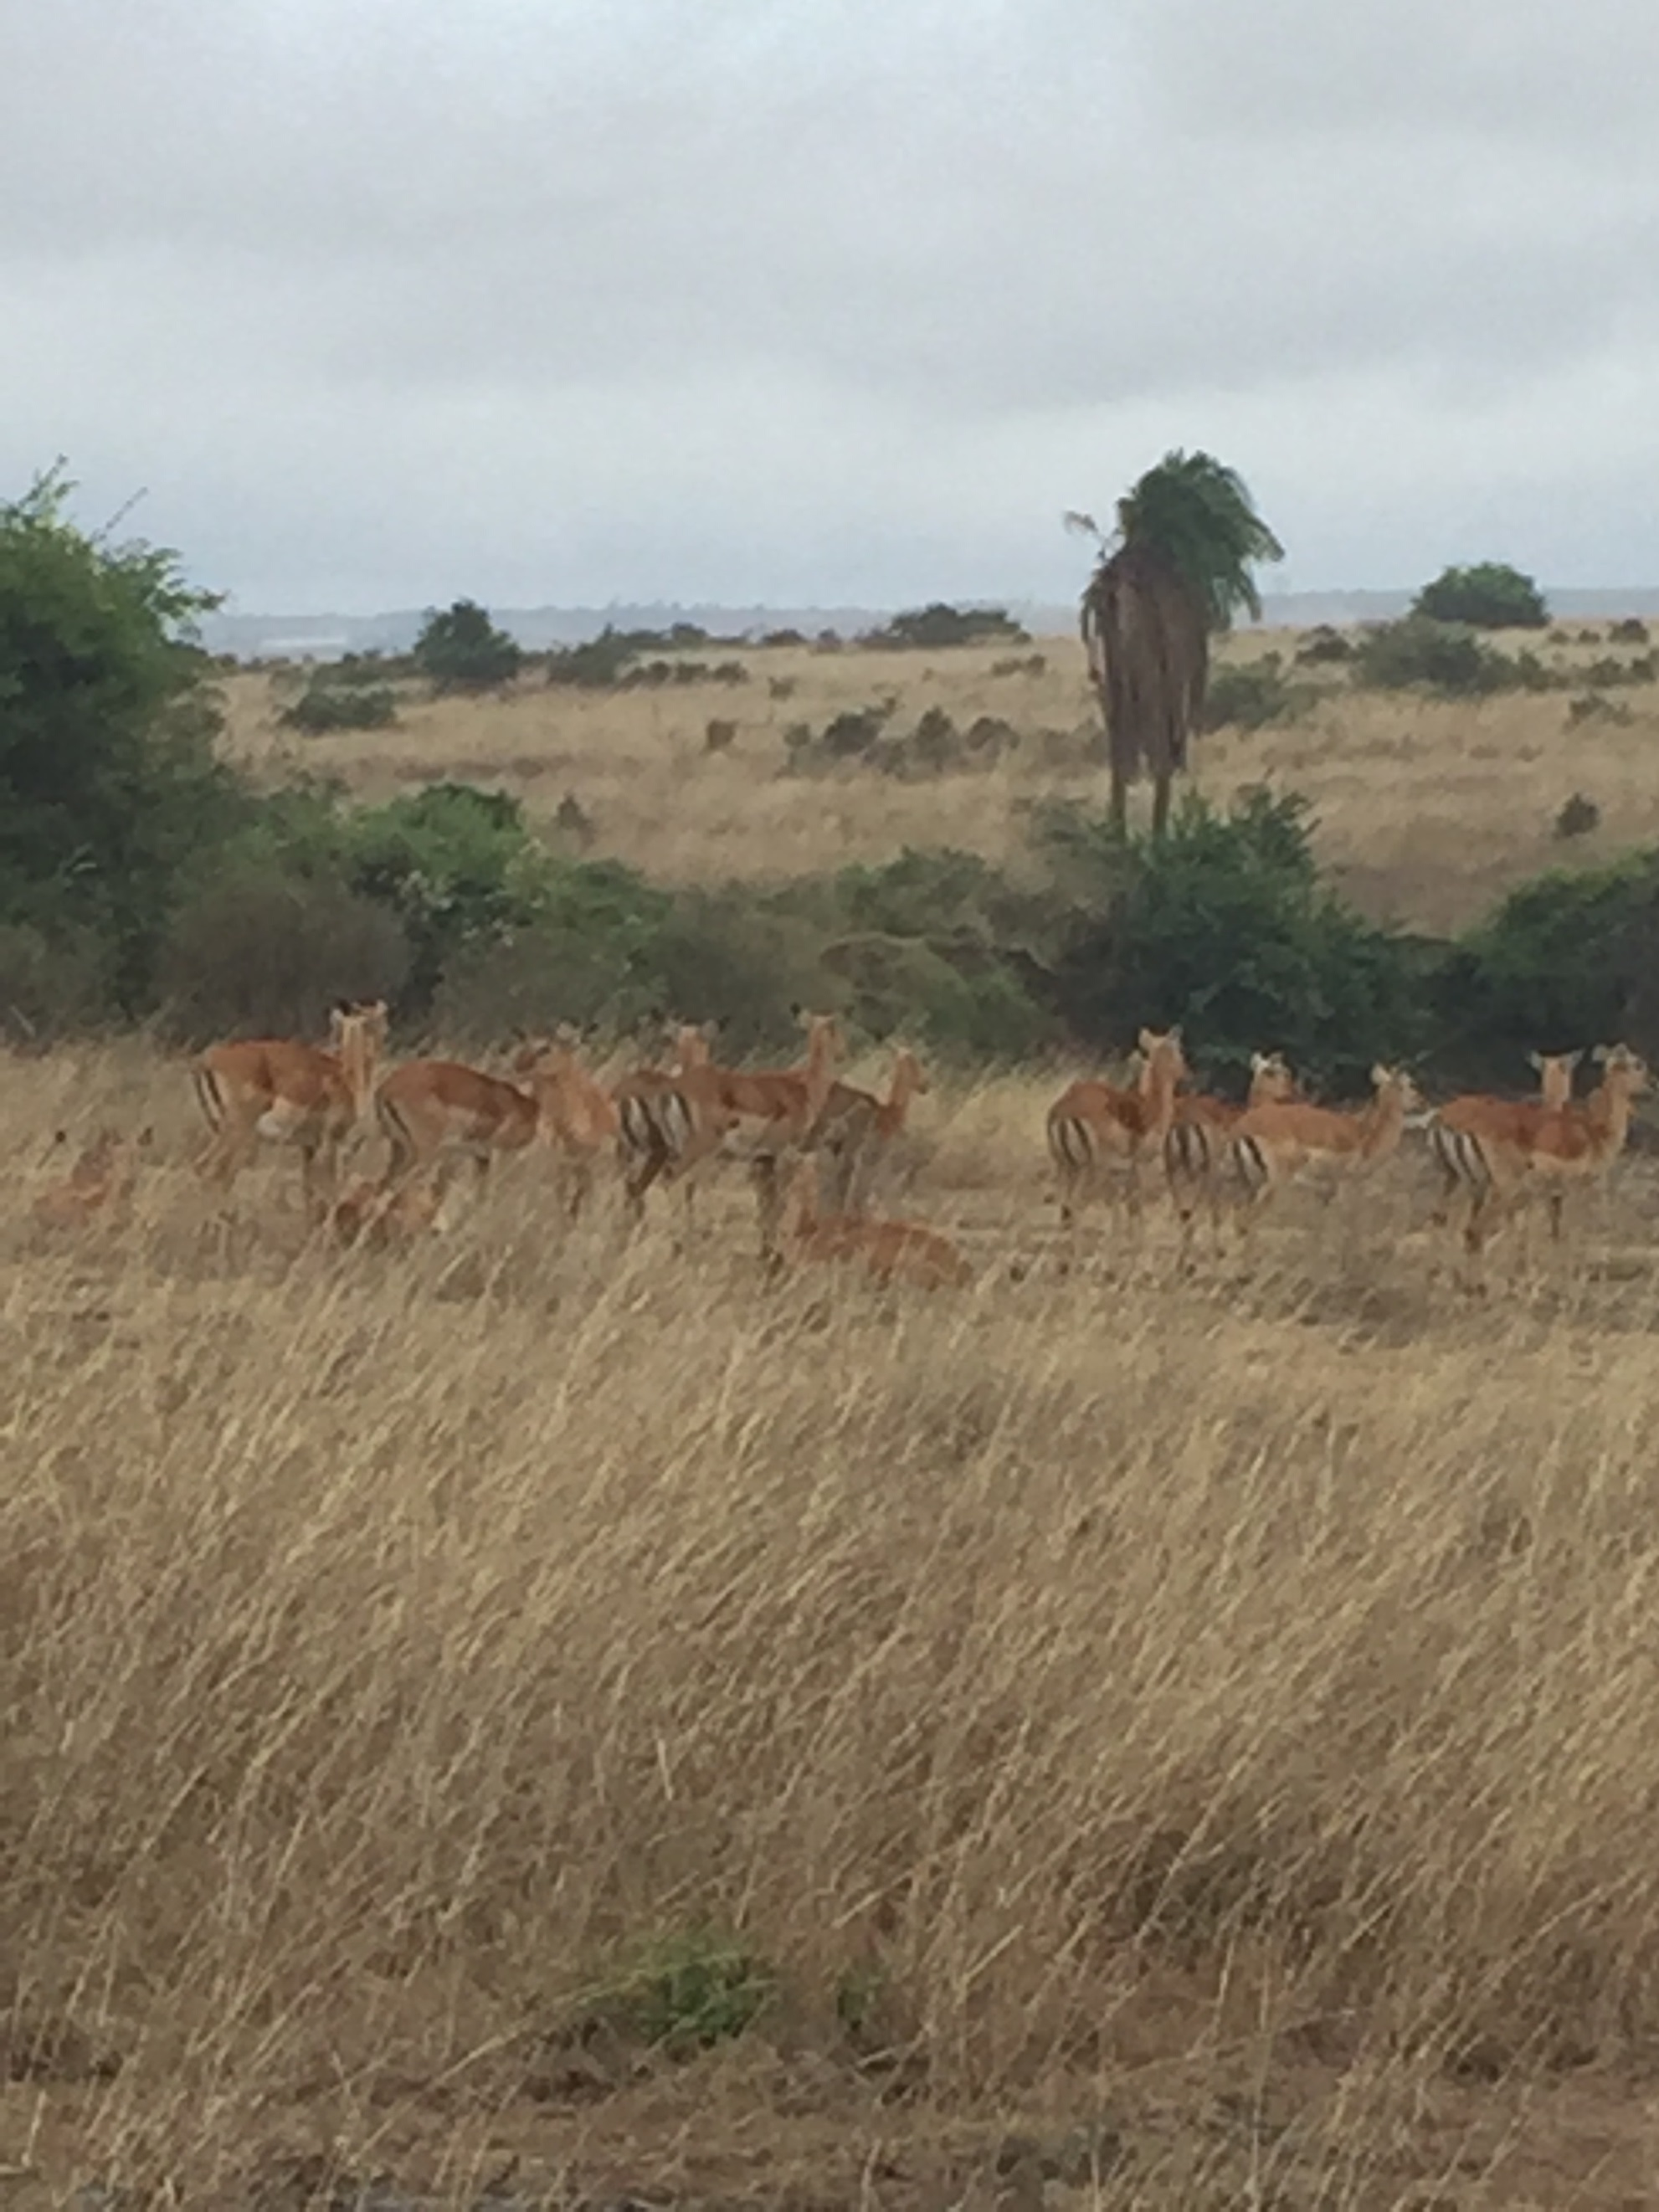 Gazelles. Looks like a painting.